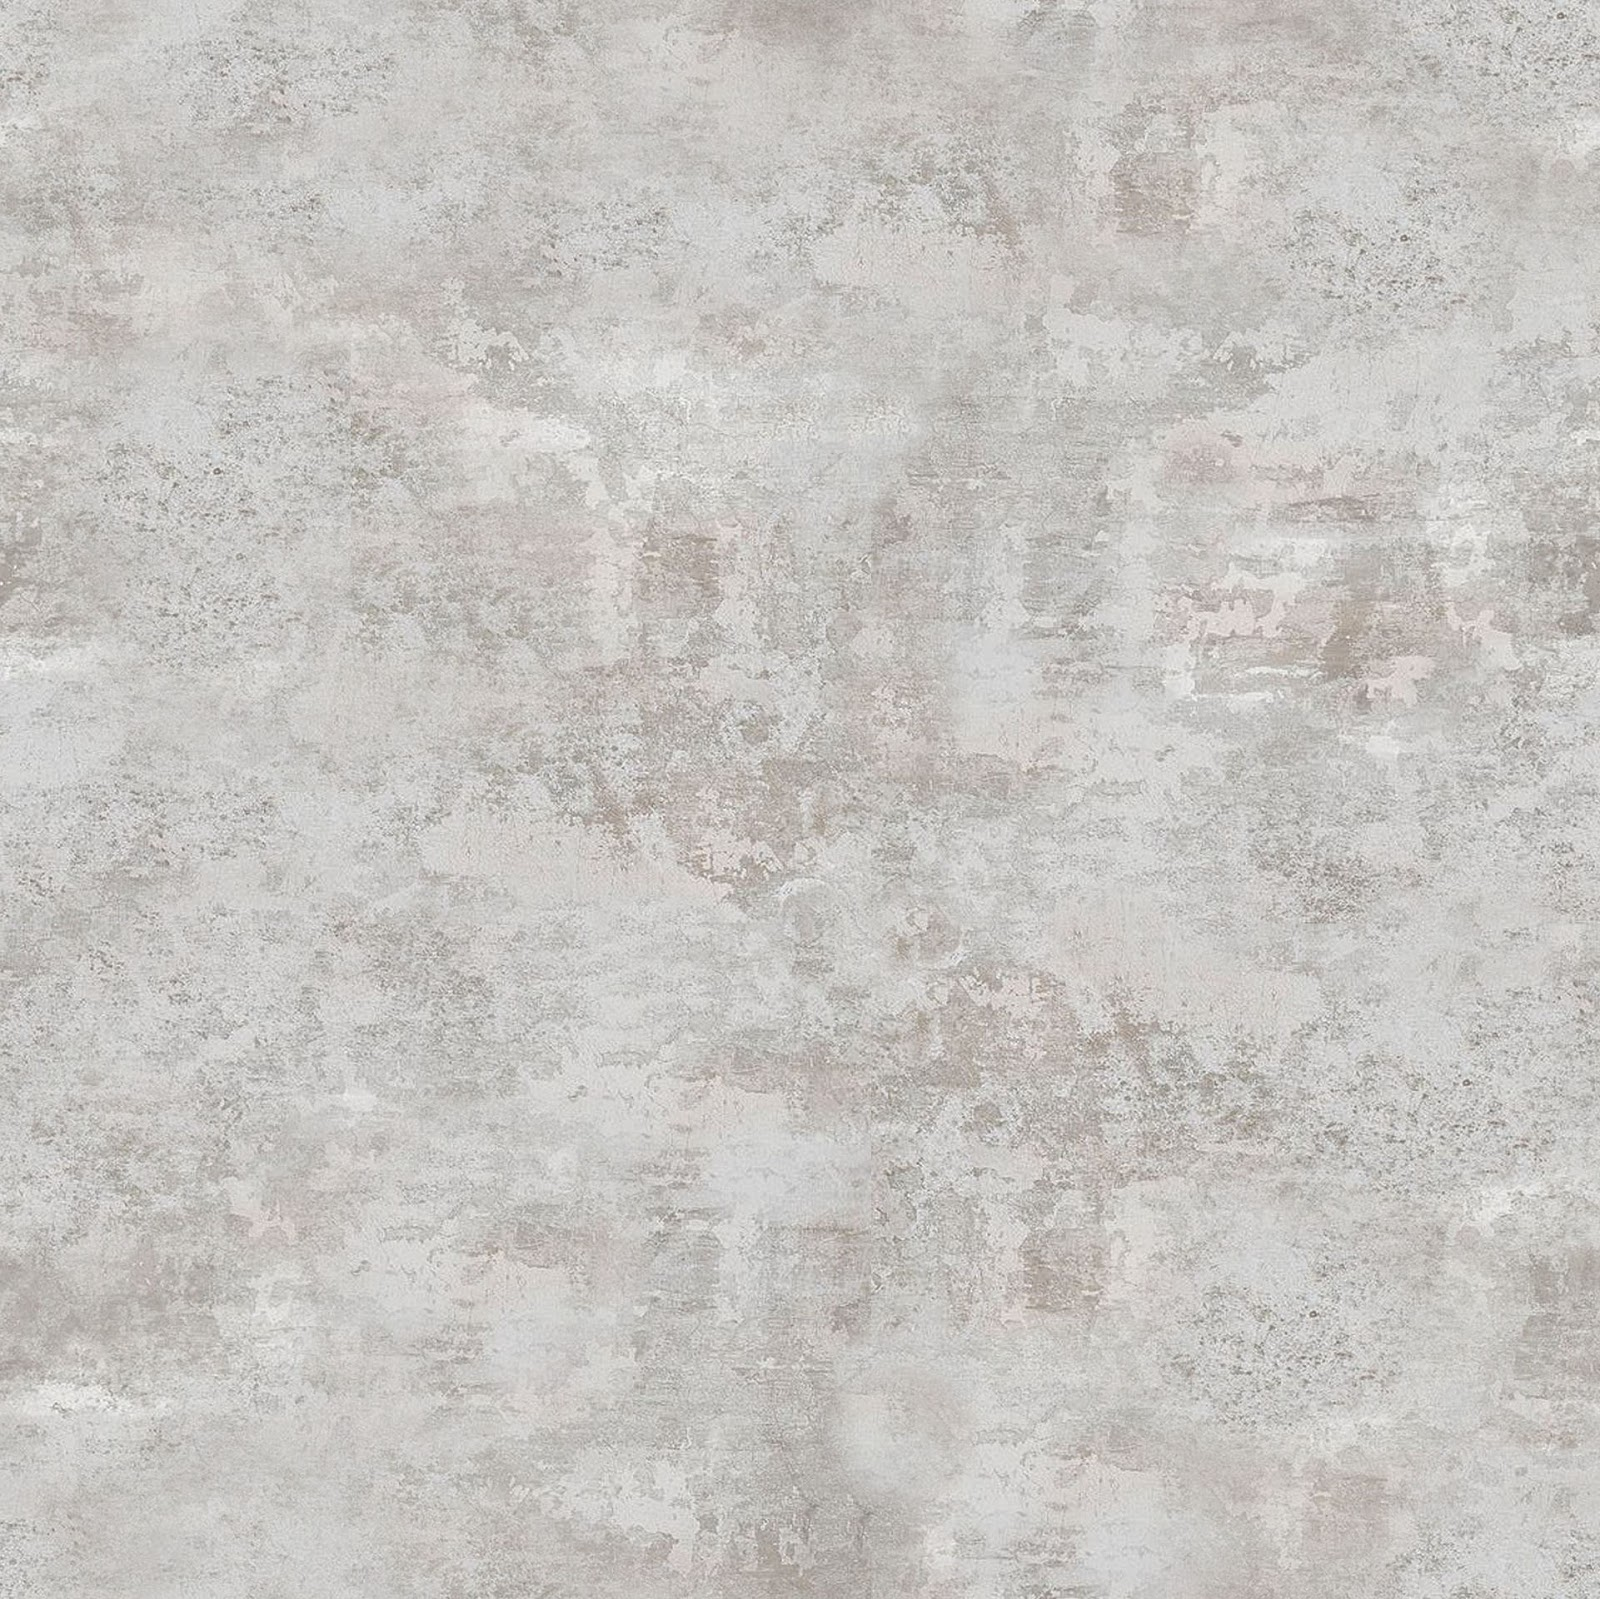 Seamless Dirty Concrete Wall Texture | Texturise Free Seamless Textures With Maps